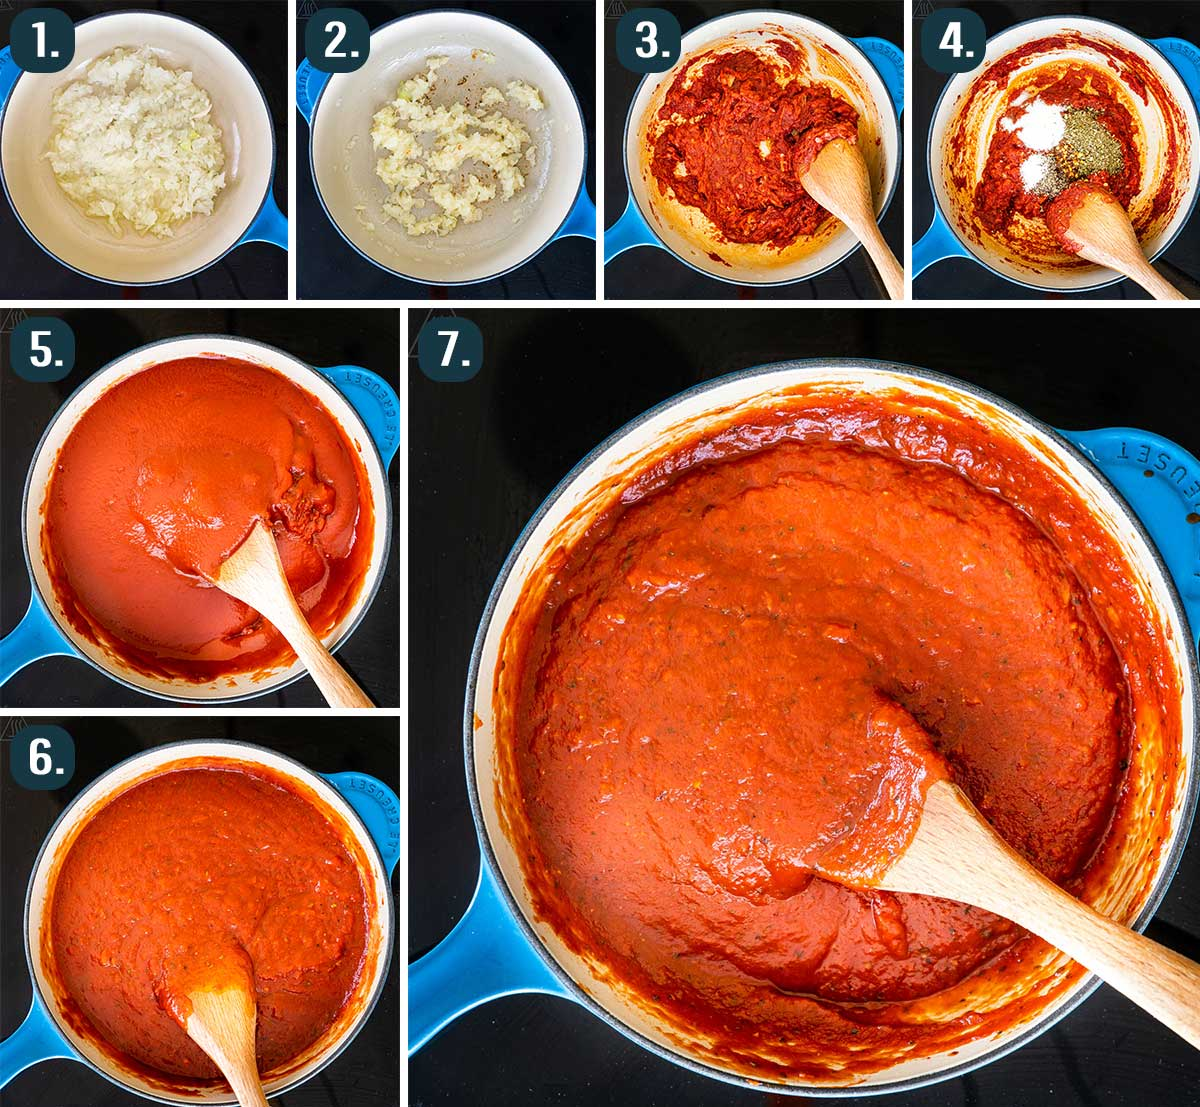 detailed process shots showing how to make homemade pizza sauce